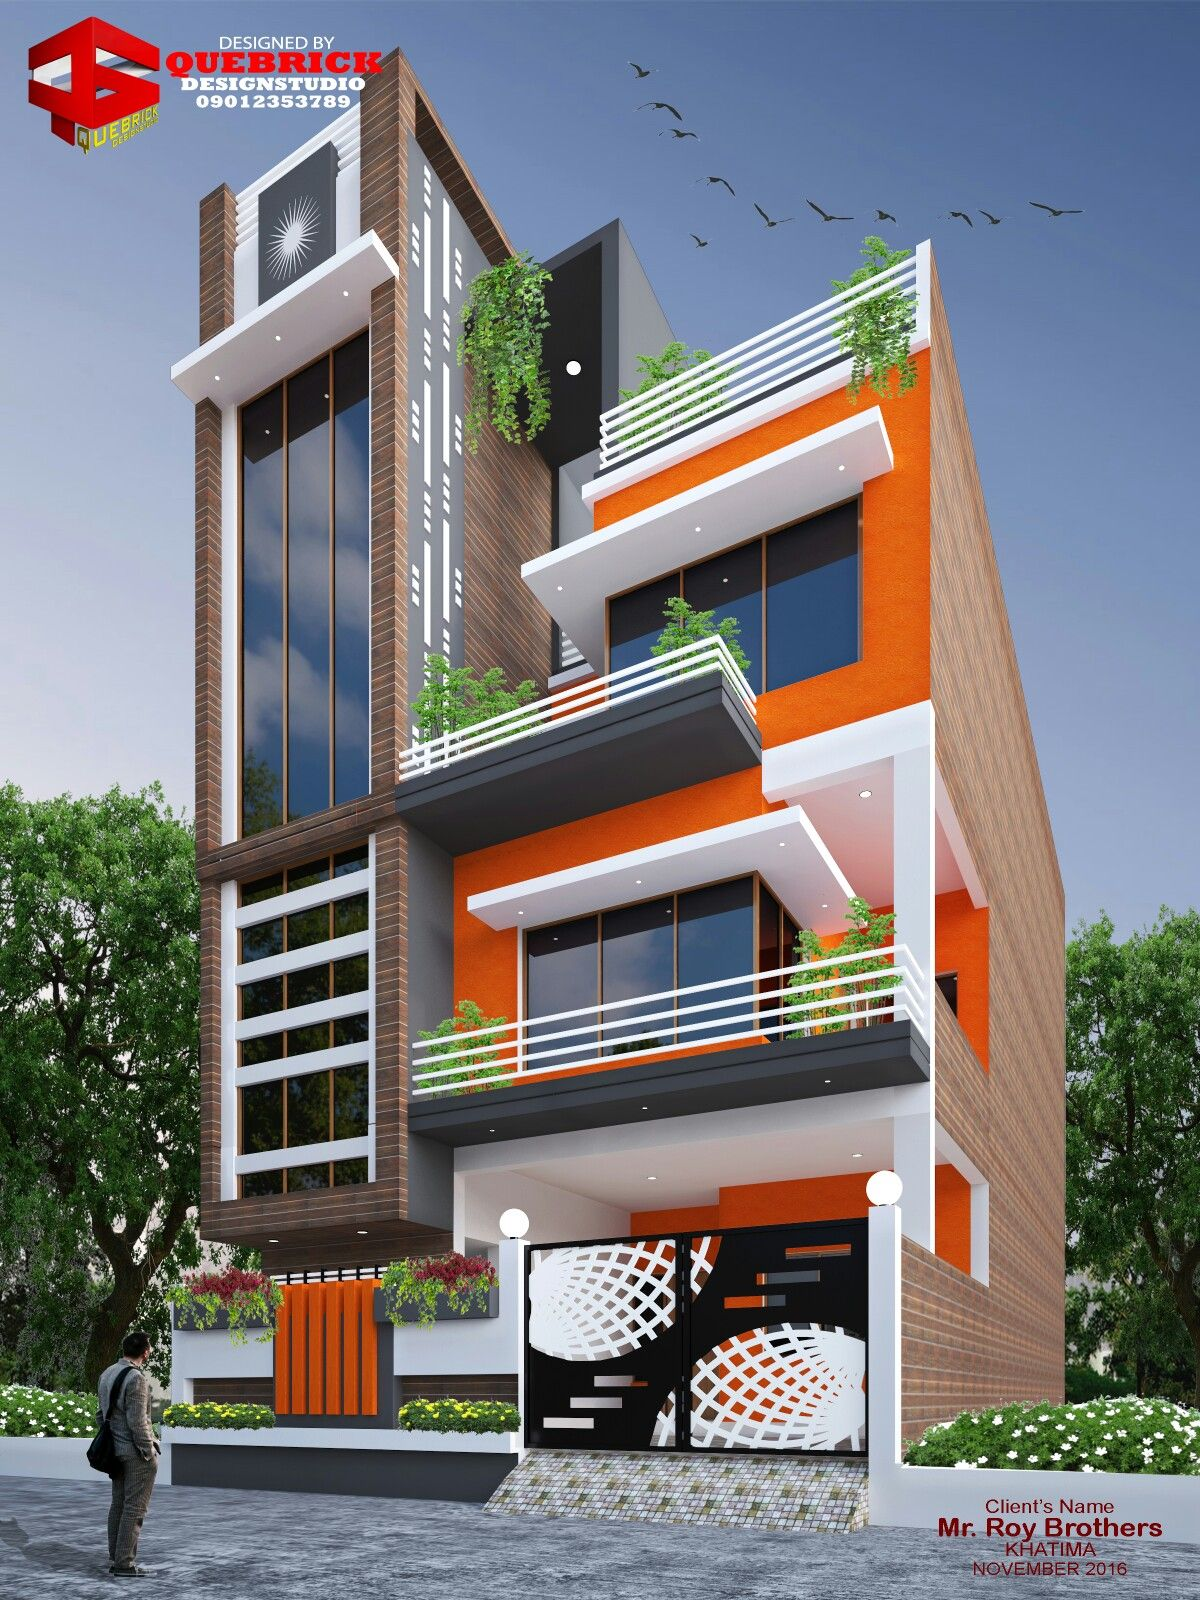 House Front Design Small House Elevation Design Architectural House Plans: Architectural House Plans, Small House Design, House